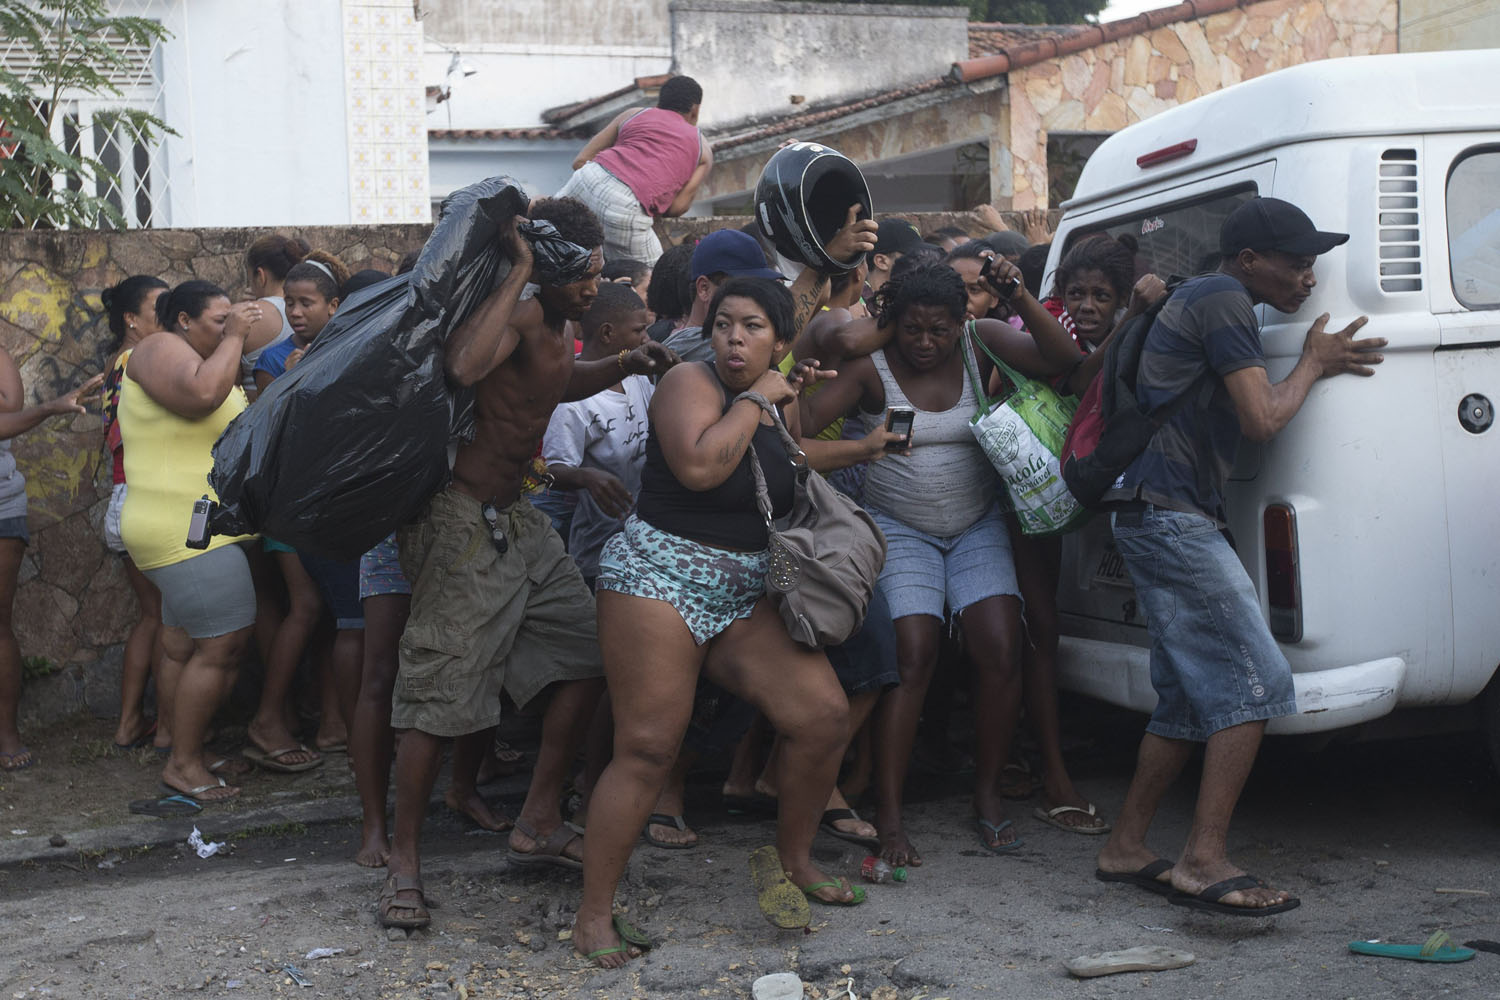 April 11, 2014. Squatters take cover from stun grenades and tear gas during an eviction in Rio de Janeiro, Brazil,